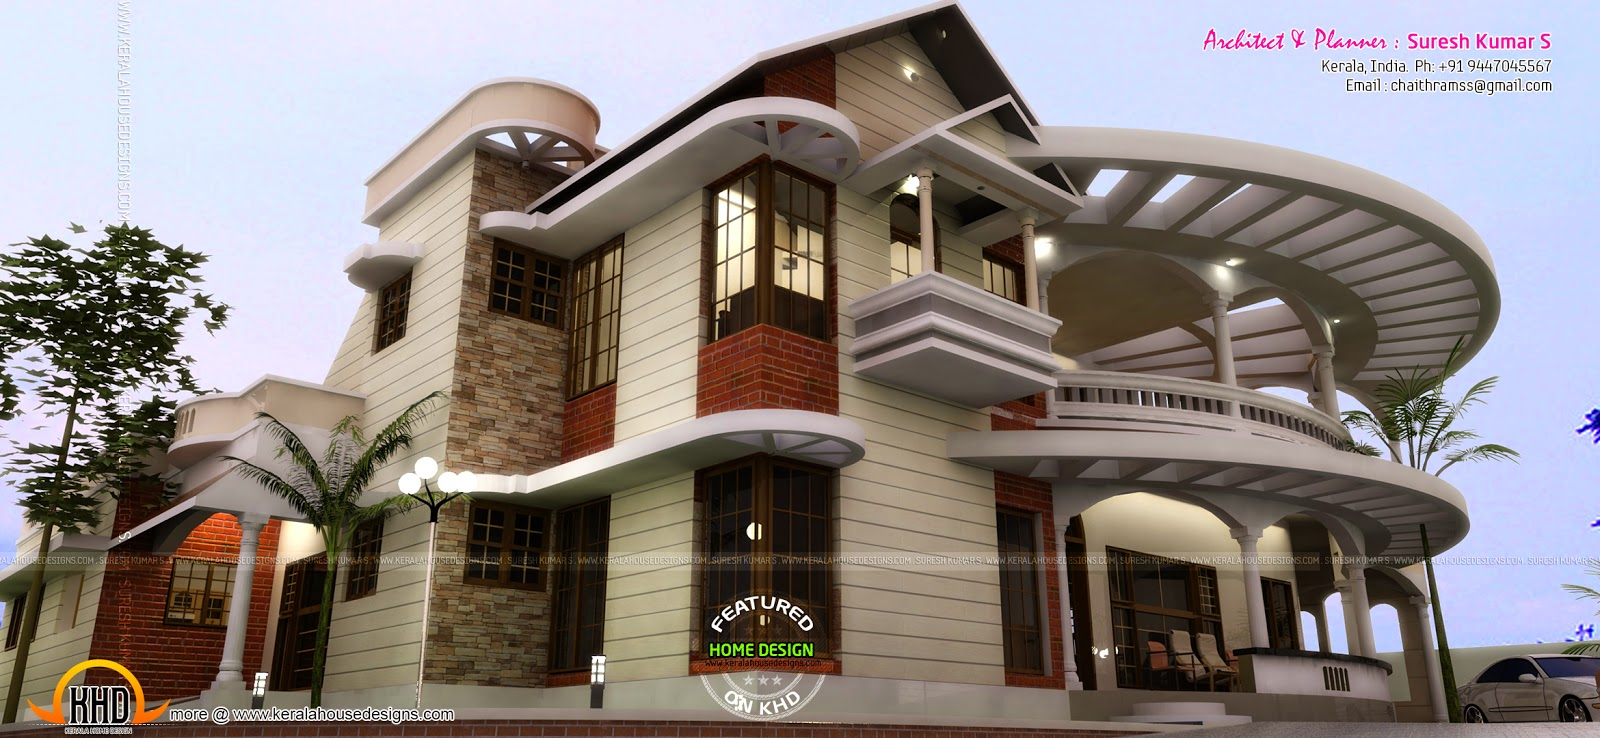 Great looking house design by suresh kumar kerala home for Neat house designs